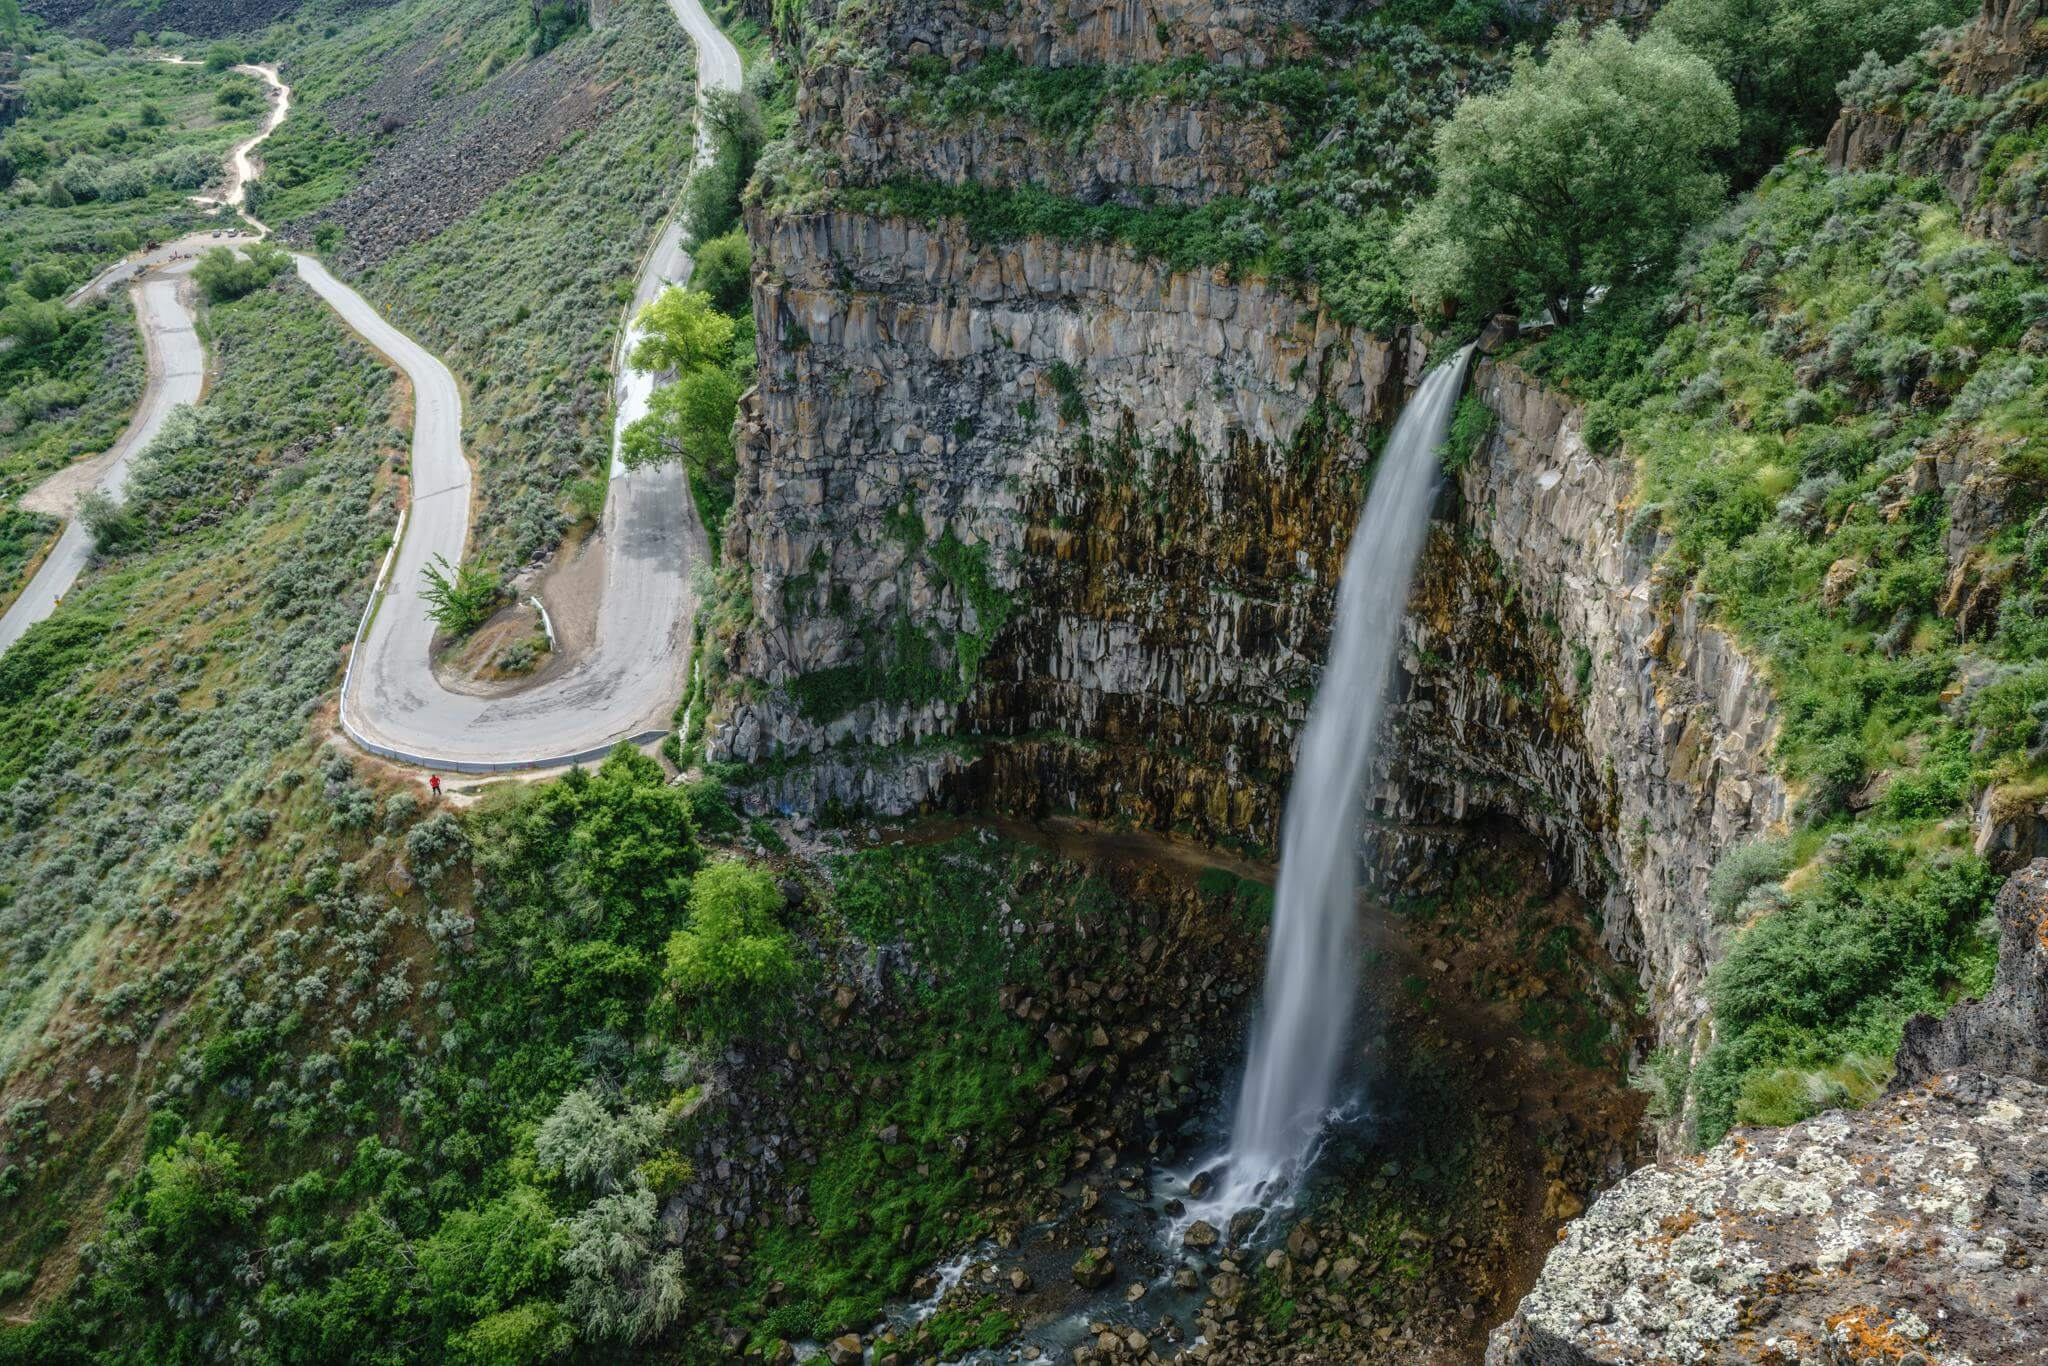 Check out this waterfall from a trail above or hike down into the canyon. Photo Credit: Michael Bonocore.